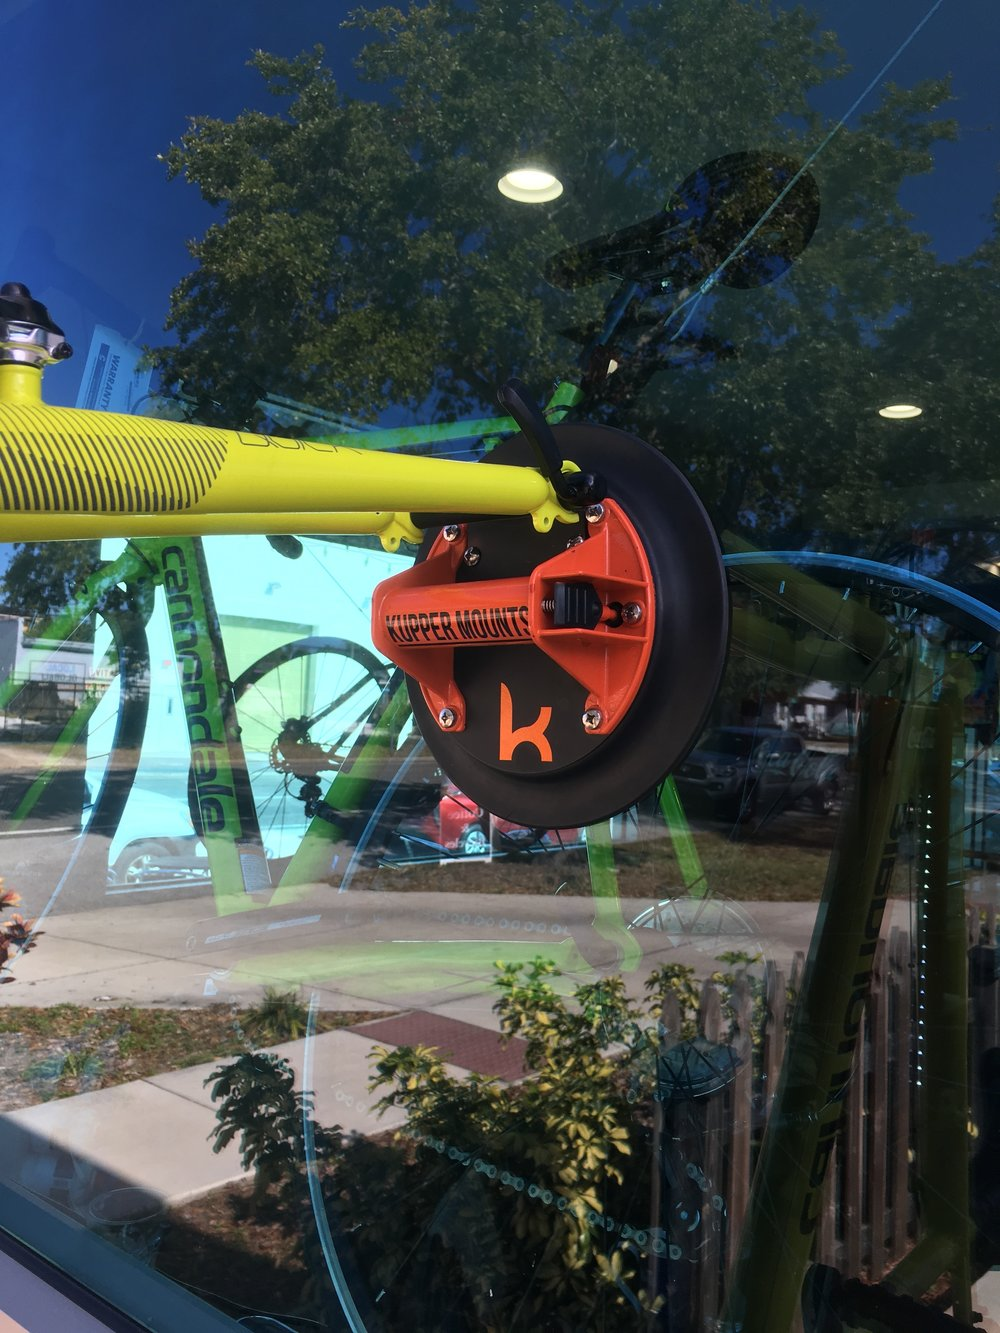 Kupper Mounts Bike Racks Can Used to Display Bikes on Outside Bike Shop Windows.JPG